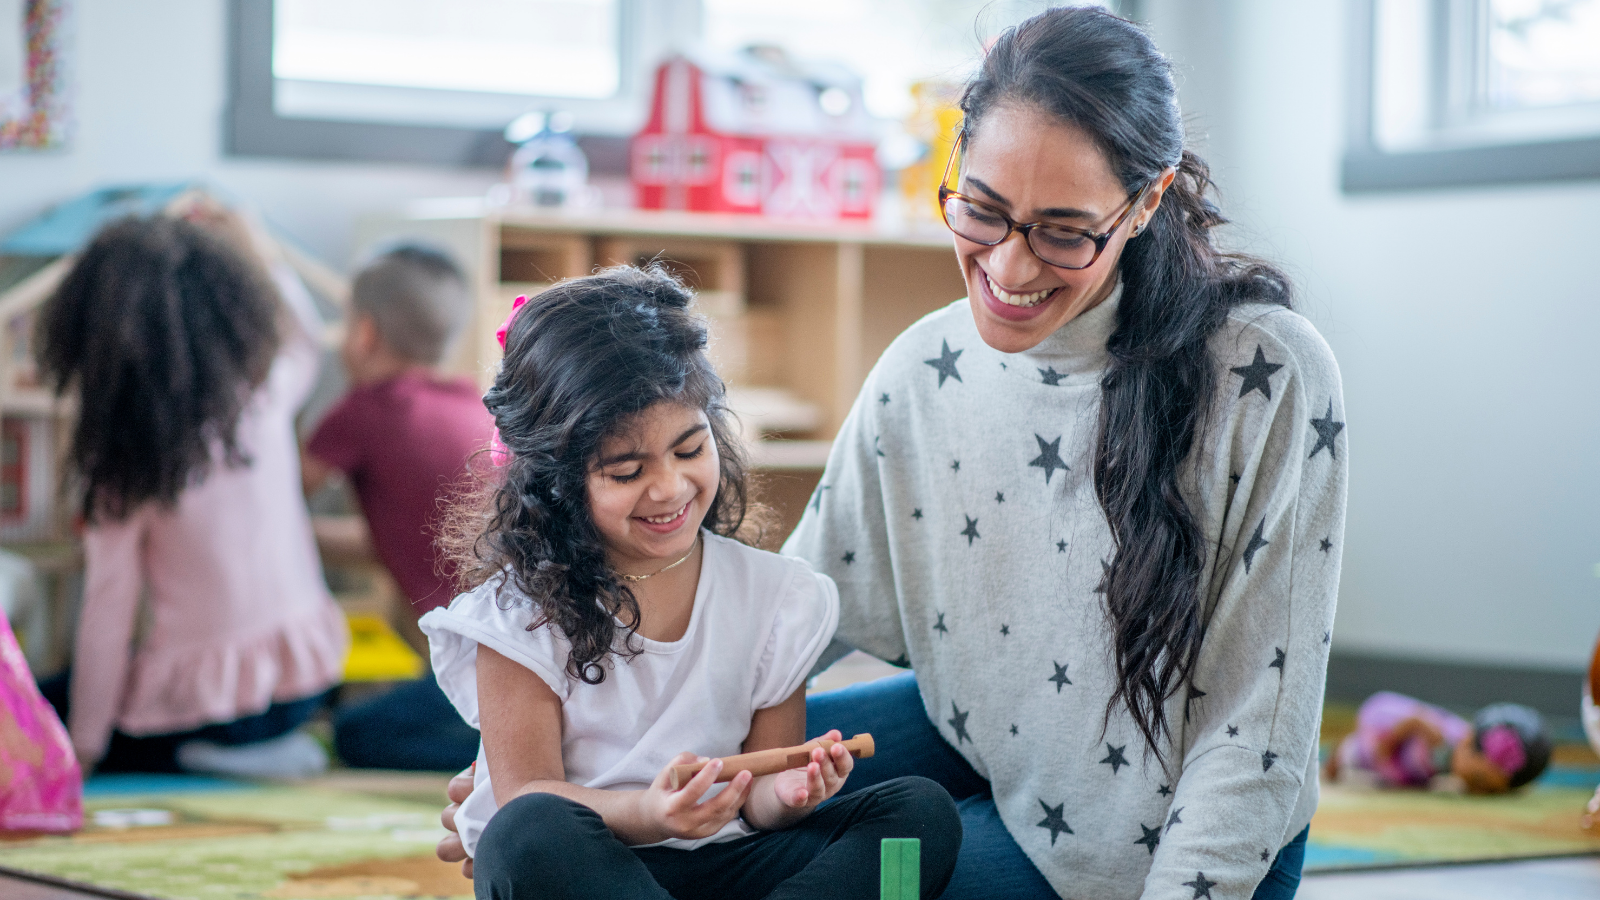 How to Plan a Professional Development Day for Childcare Staff—Ideas to Engage and Motivate Your Teachers